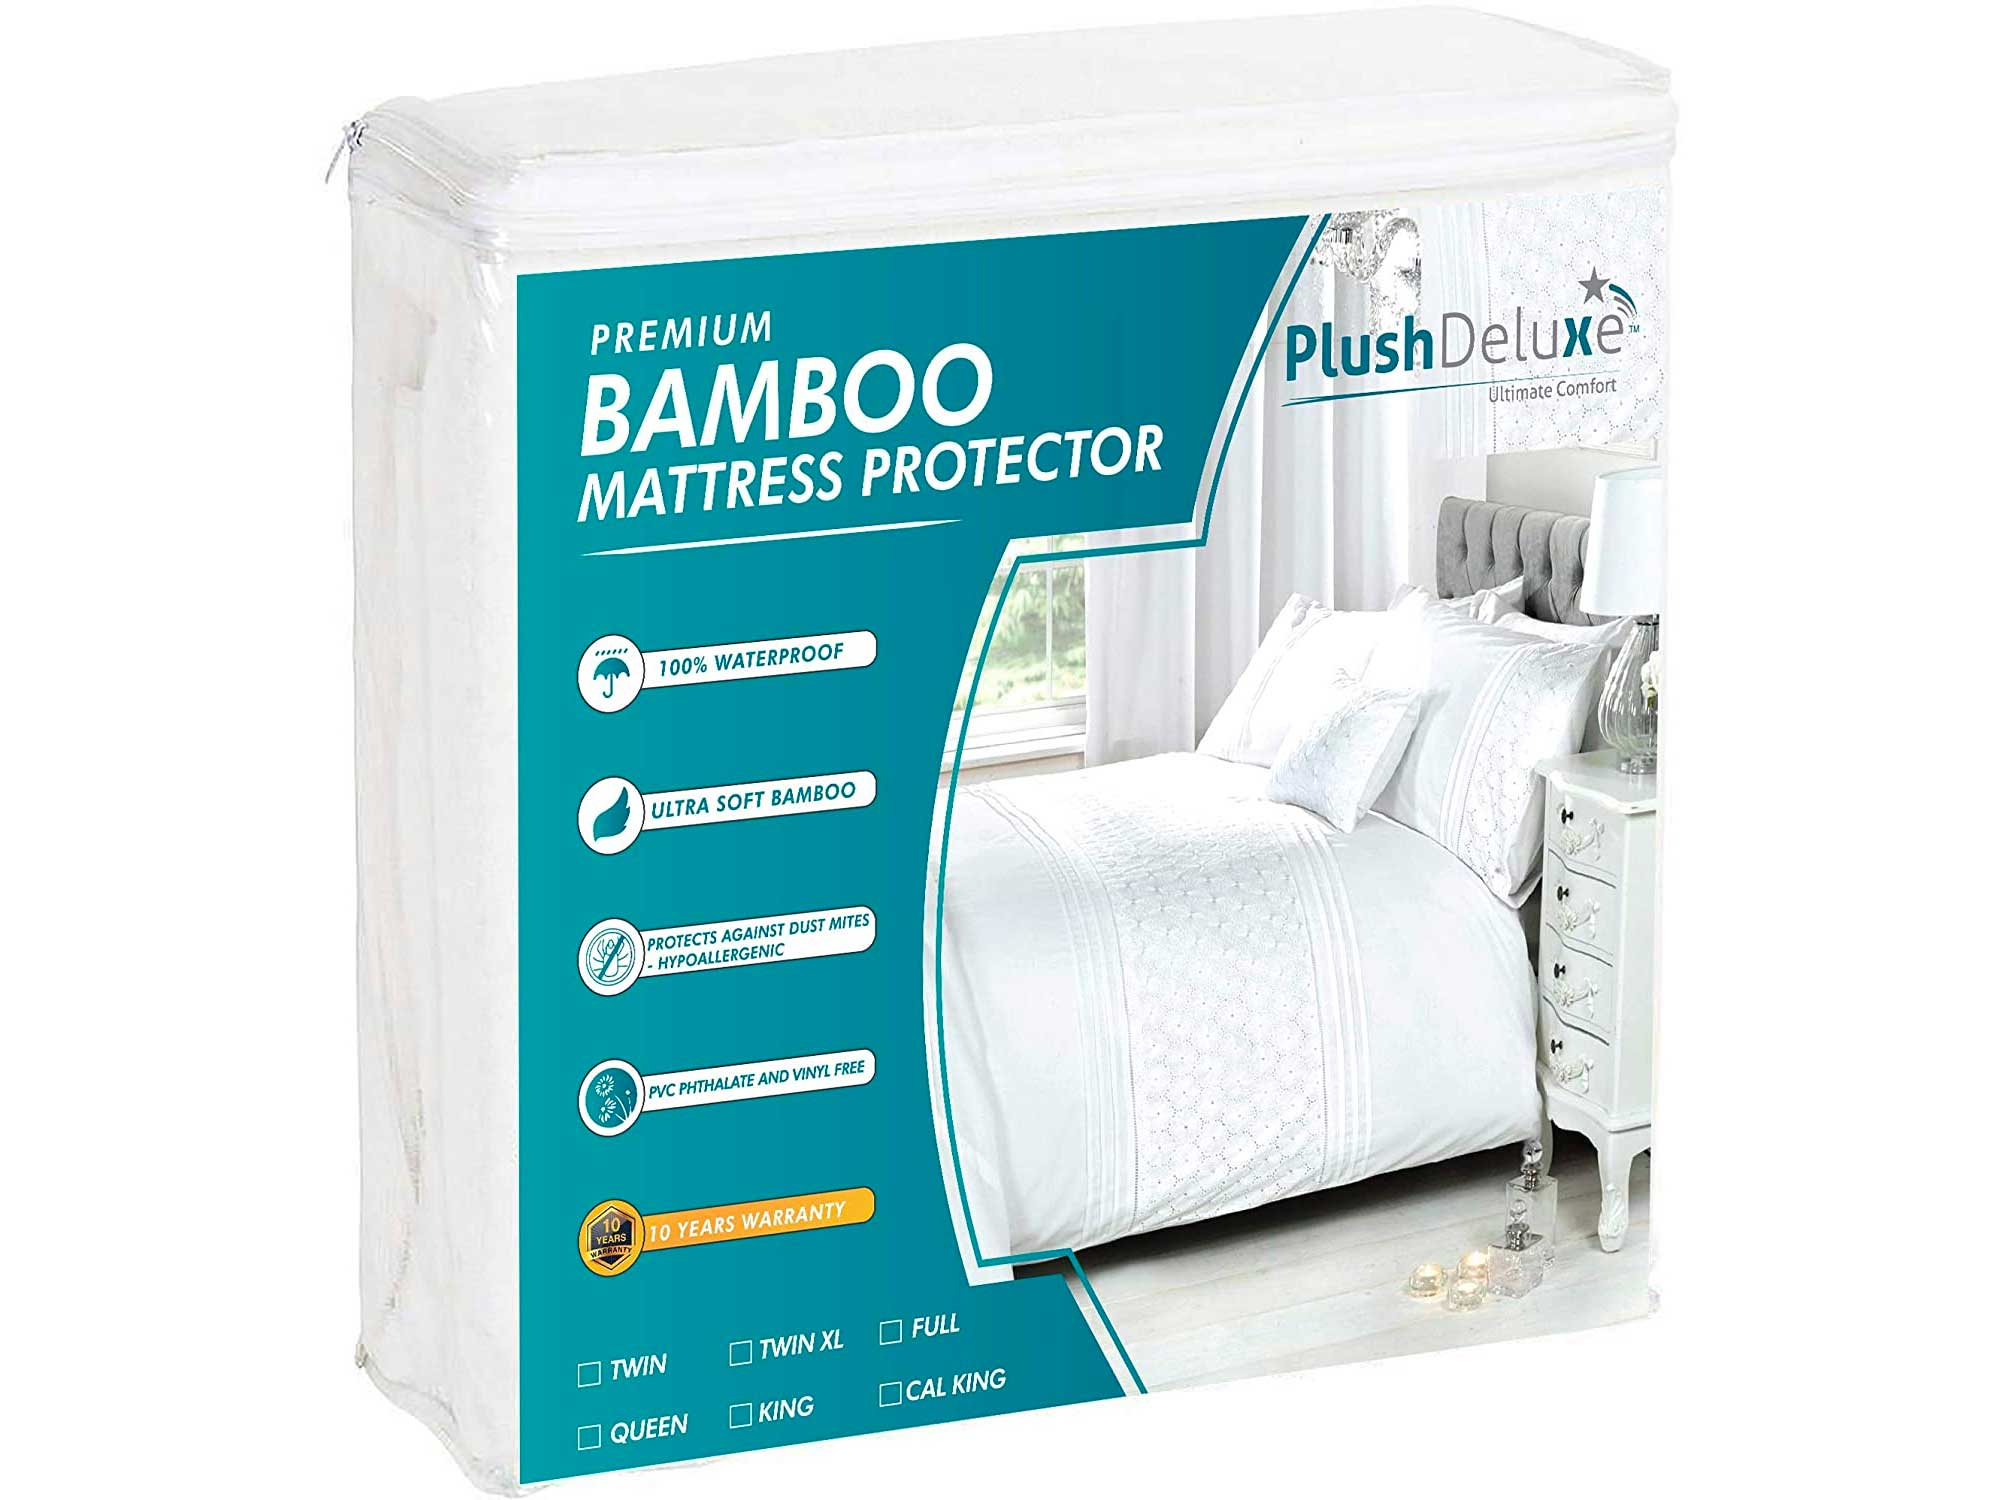 PlushDeluxe Premium Bamboo Mattress Protector – Waterproof, Hypoallergenic & Ultra Soft Breathable Bed Mattress Cover for Maximum Comfort & Protection